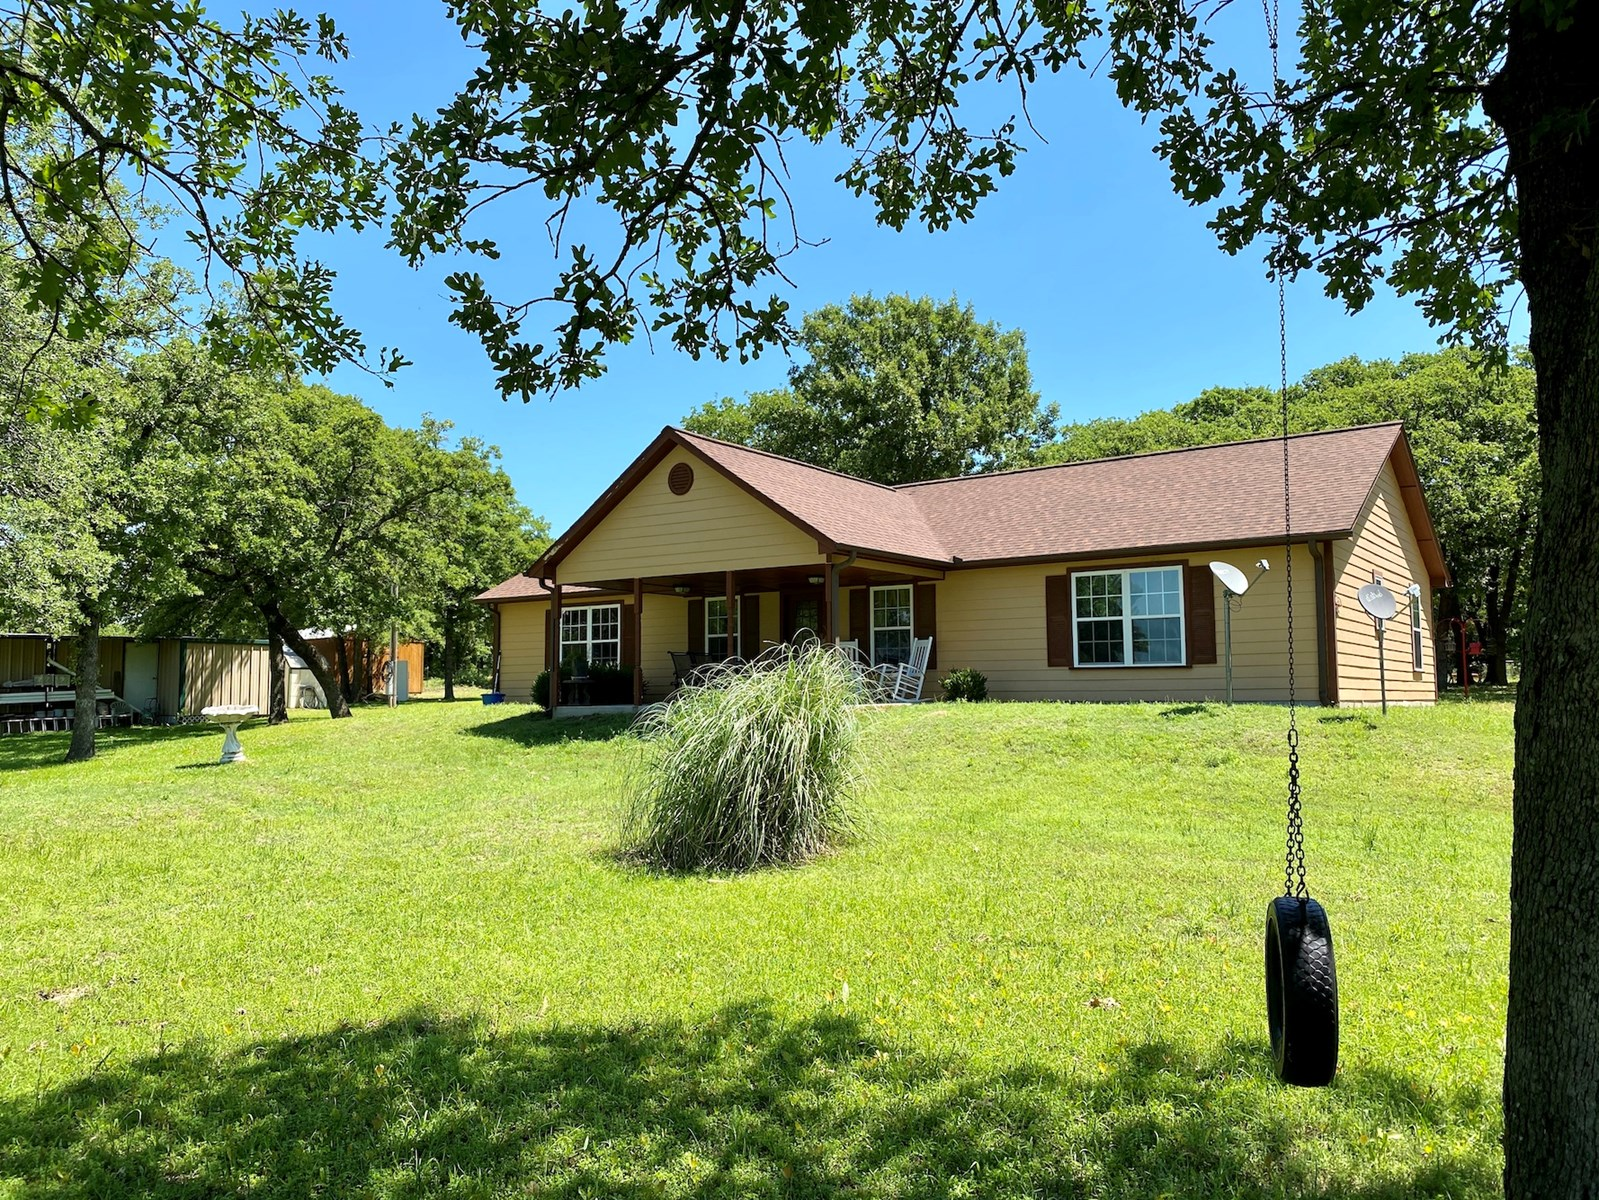 COUNTRY HOME ON 25 WOODED ACRES/ HUNTING/ NO RESTRICTIONS